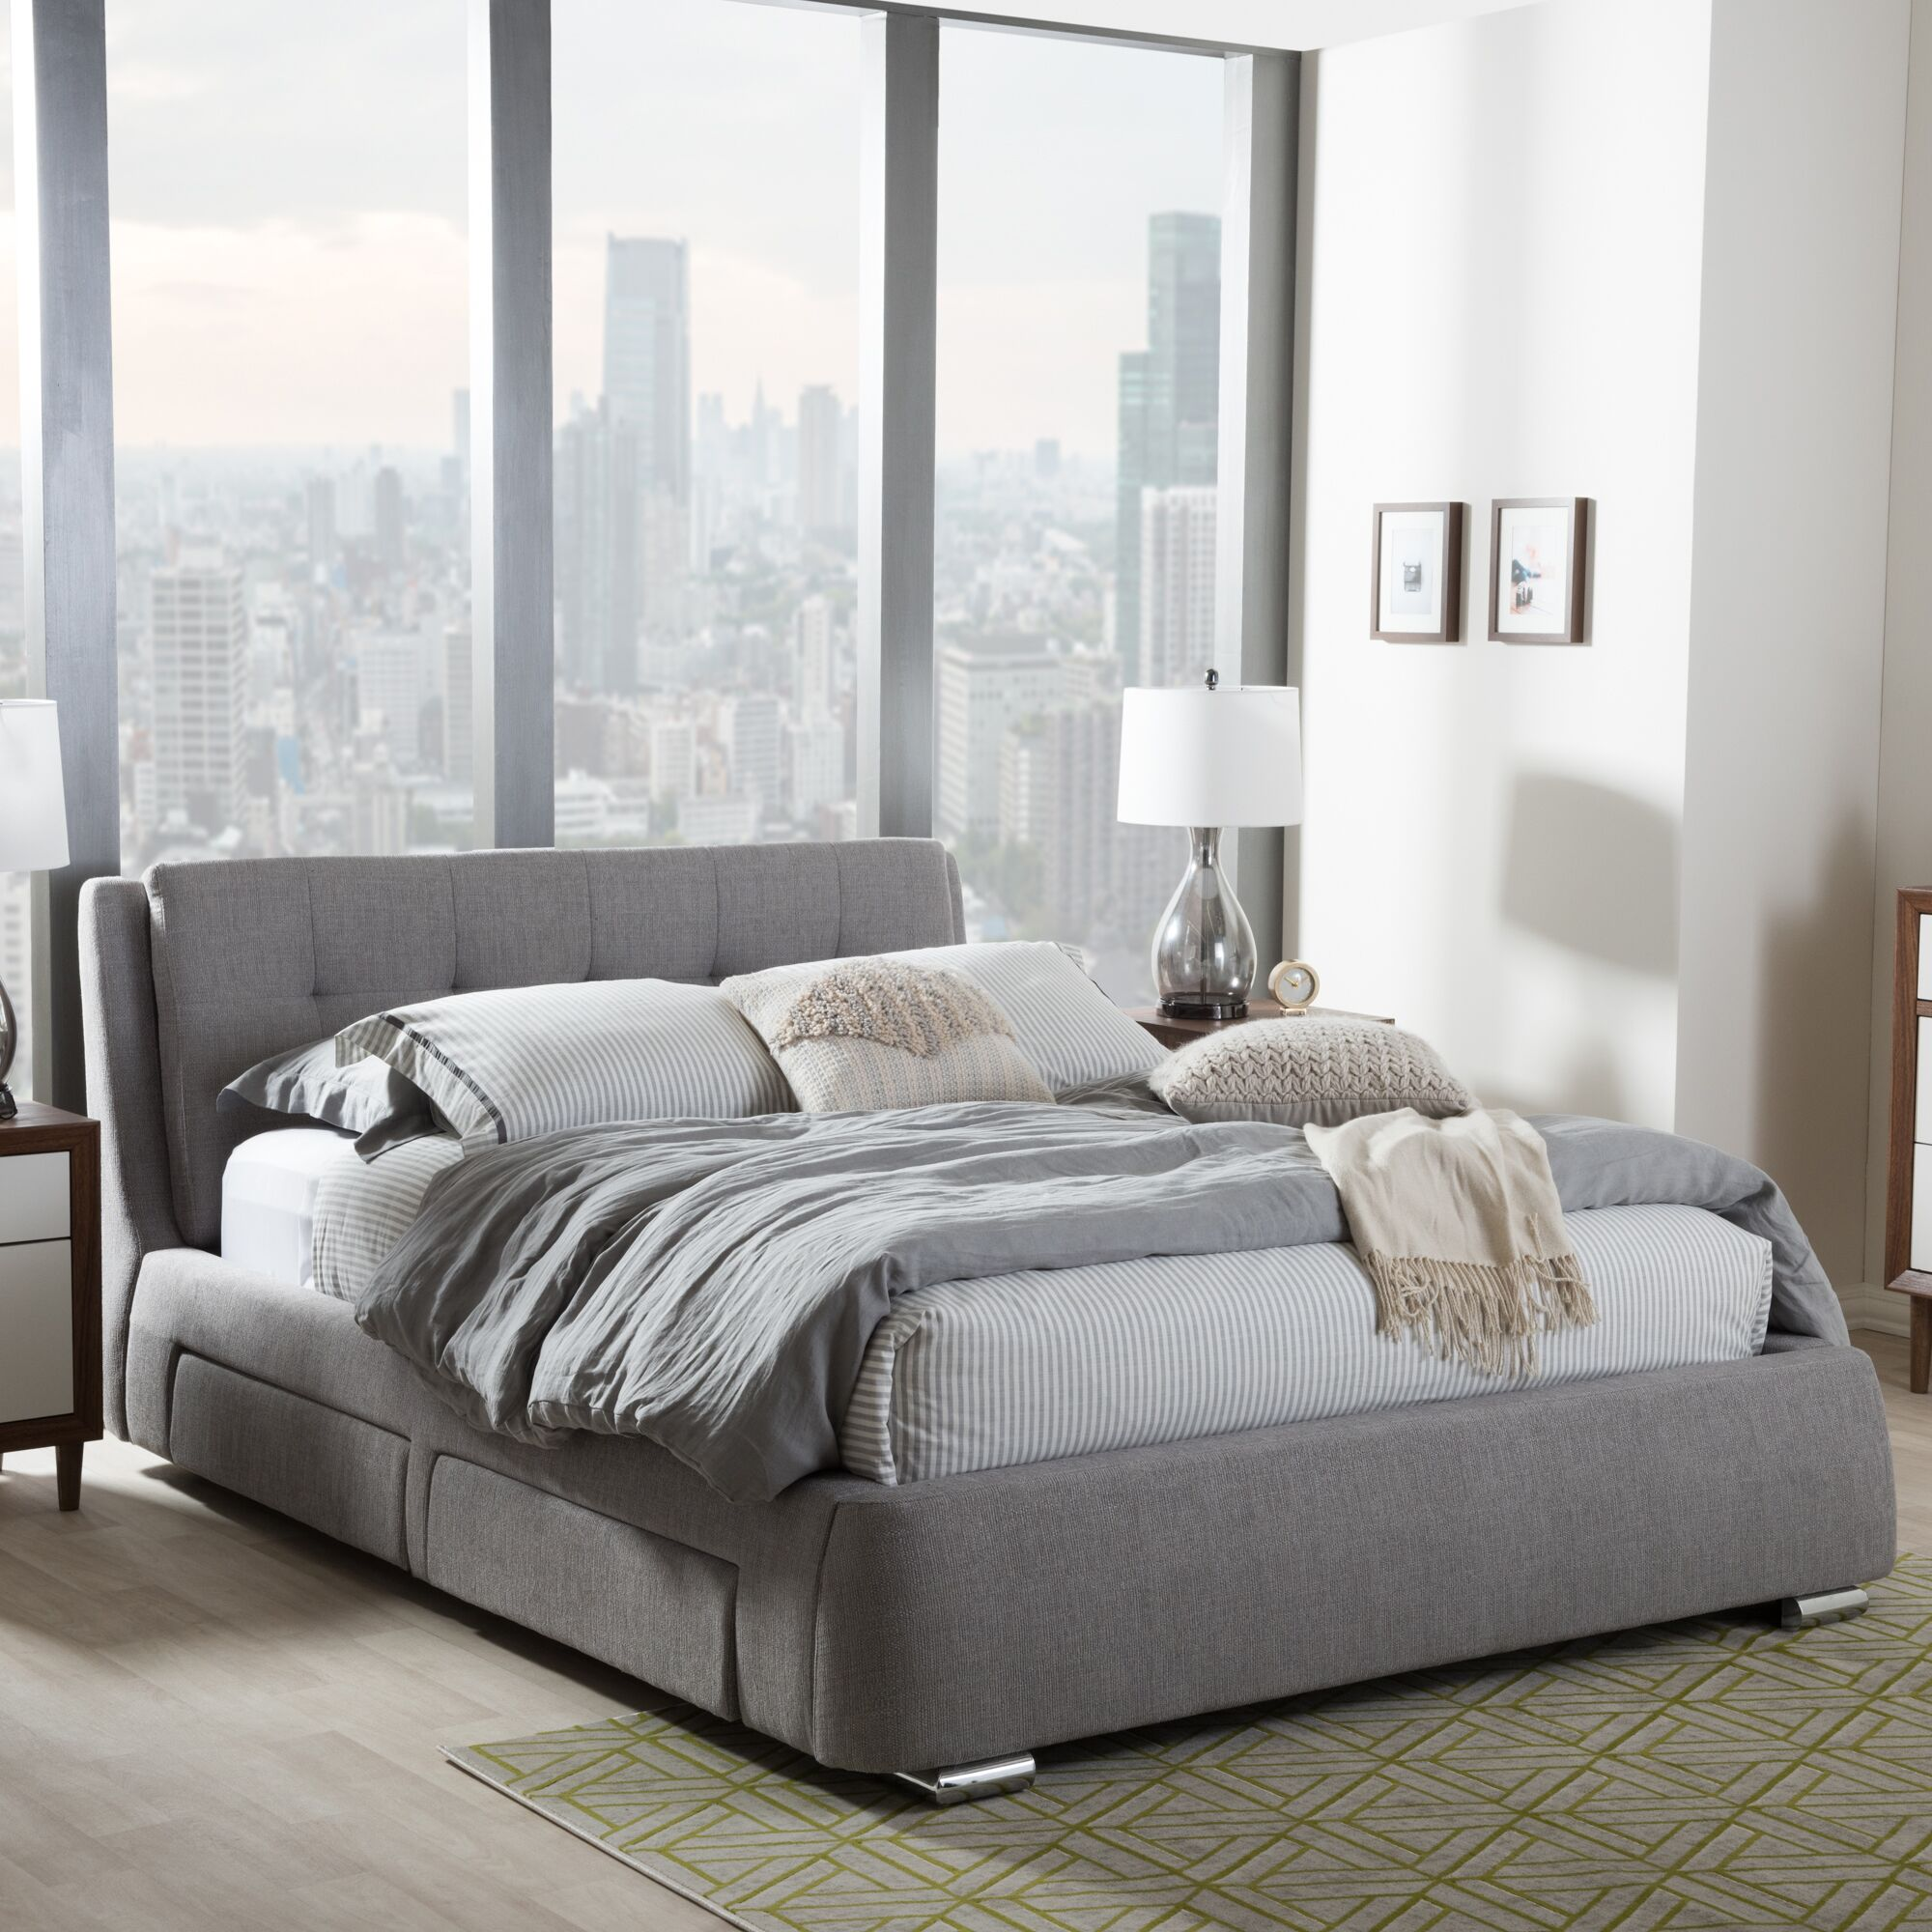 Utley Platform Bed Size: Queen